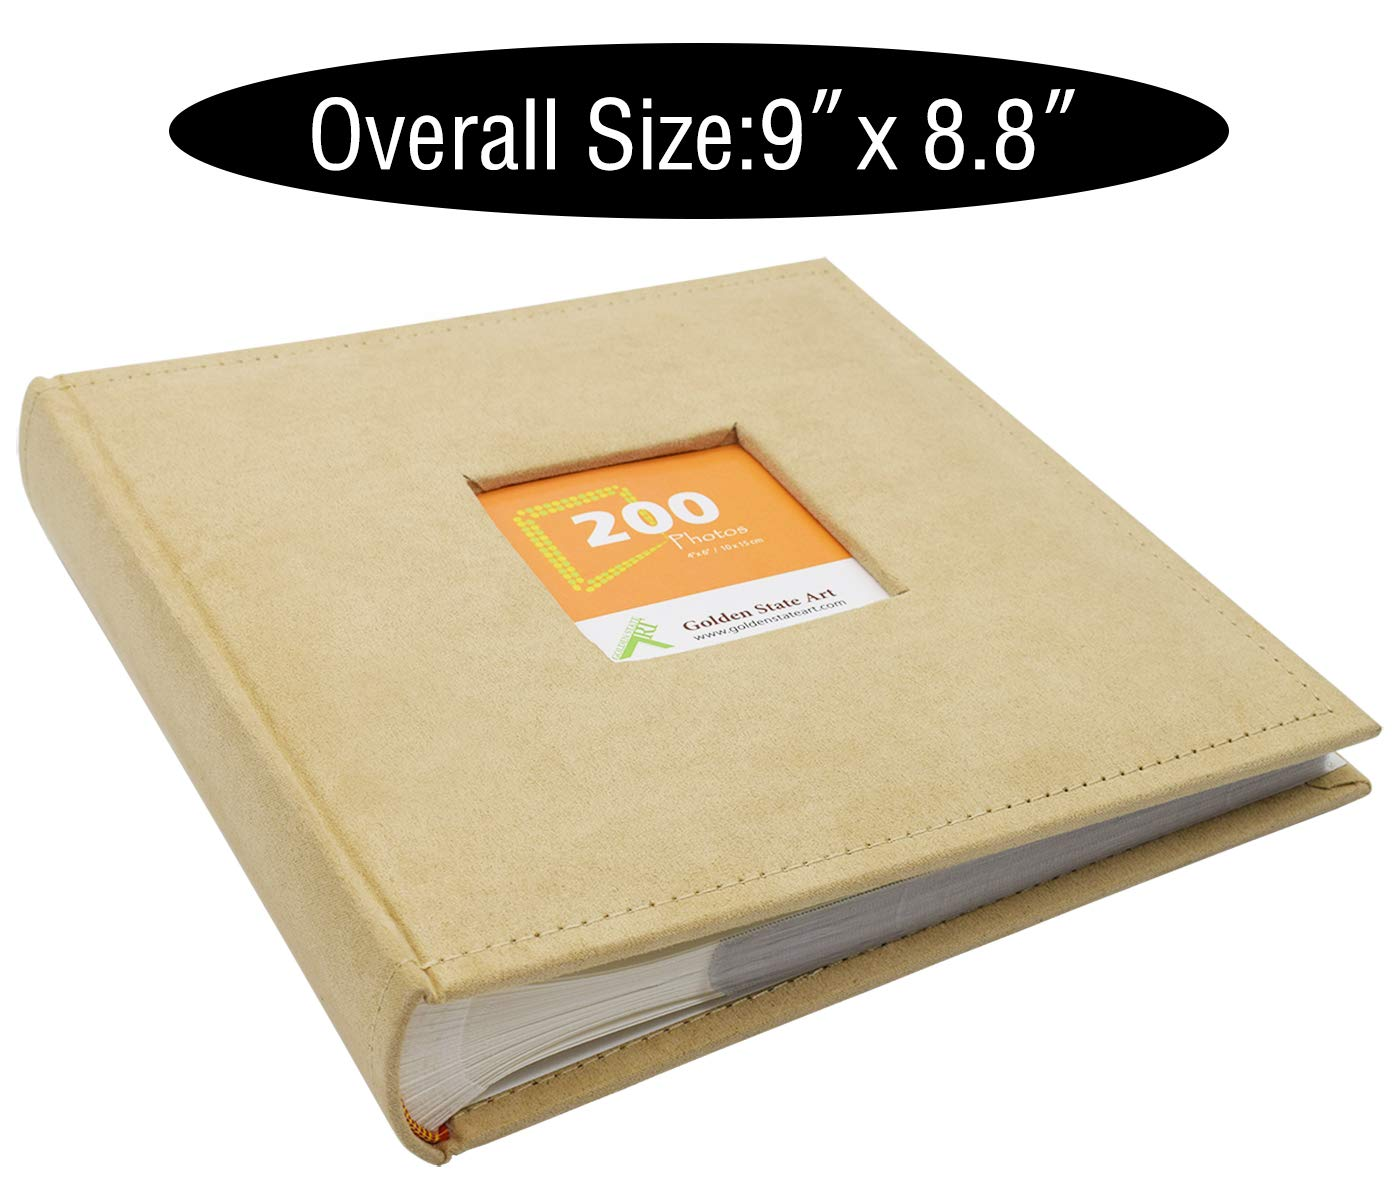 2 Per Page Large Capacity Brown Suede Vacation Golden State Art Wedding Family Baby Holiday Photo Album Christmas Anniversary Photography book for 200 4x6 Pictures Pockets with Memo